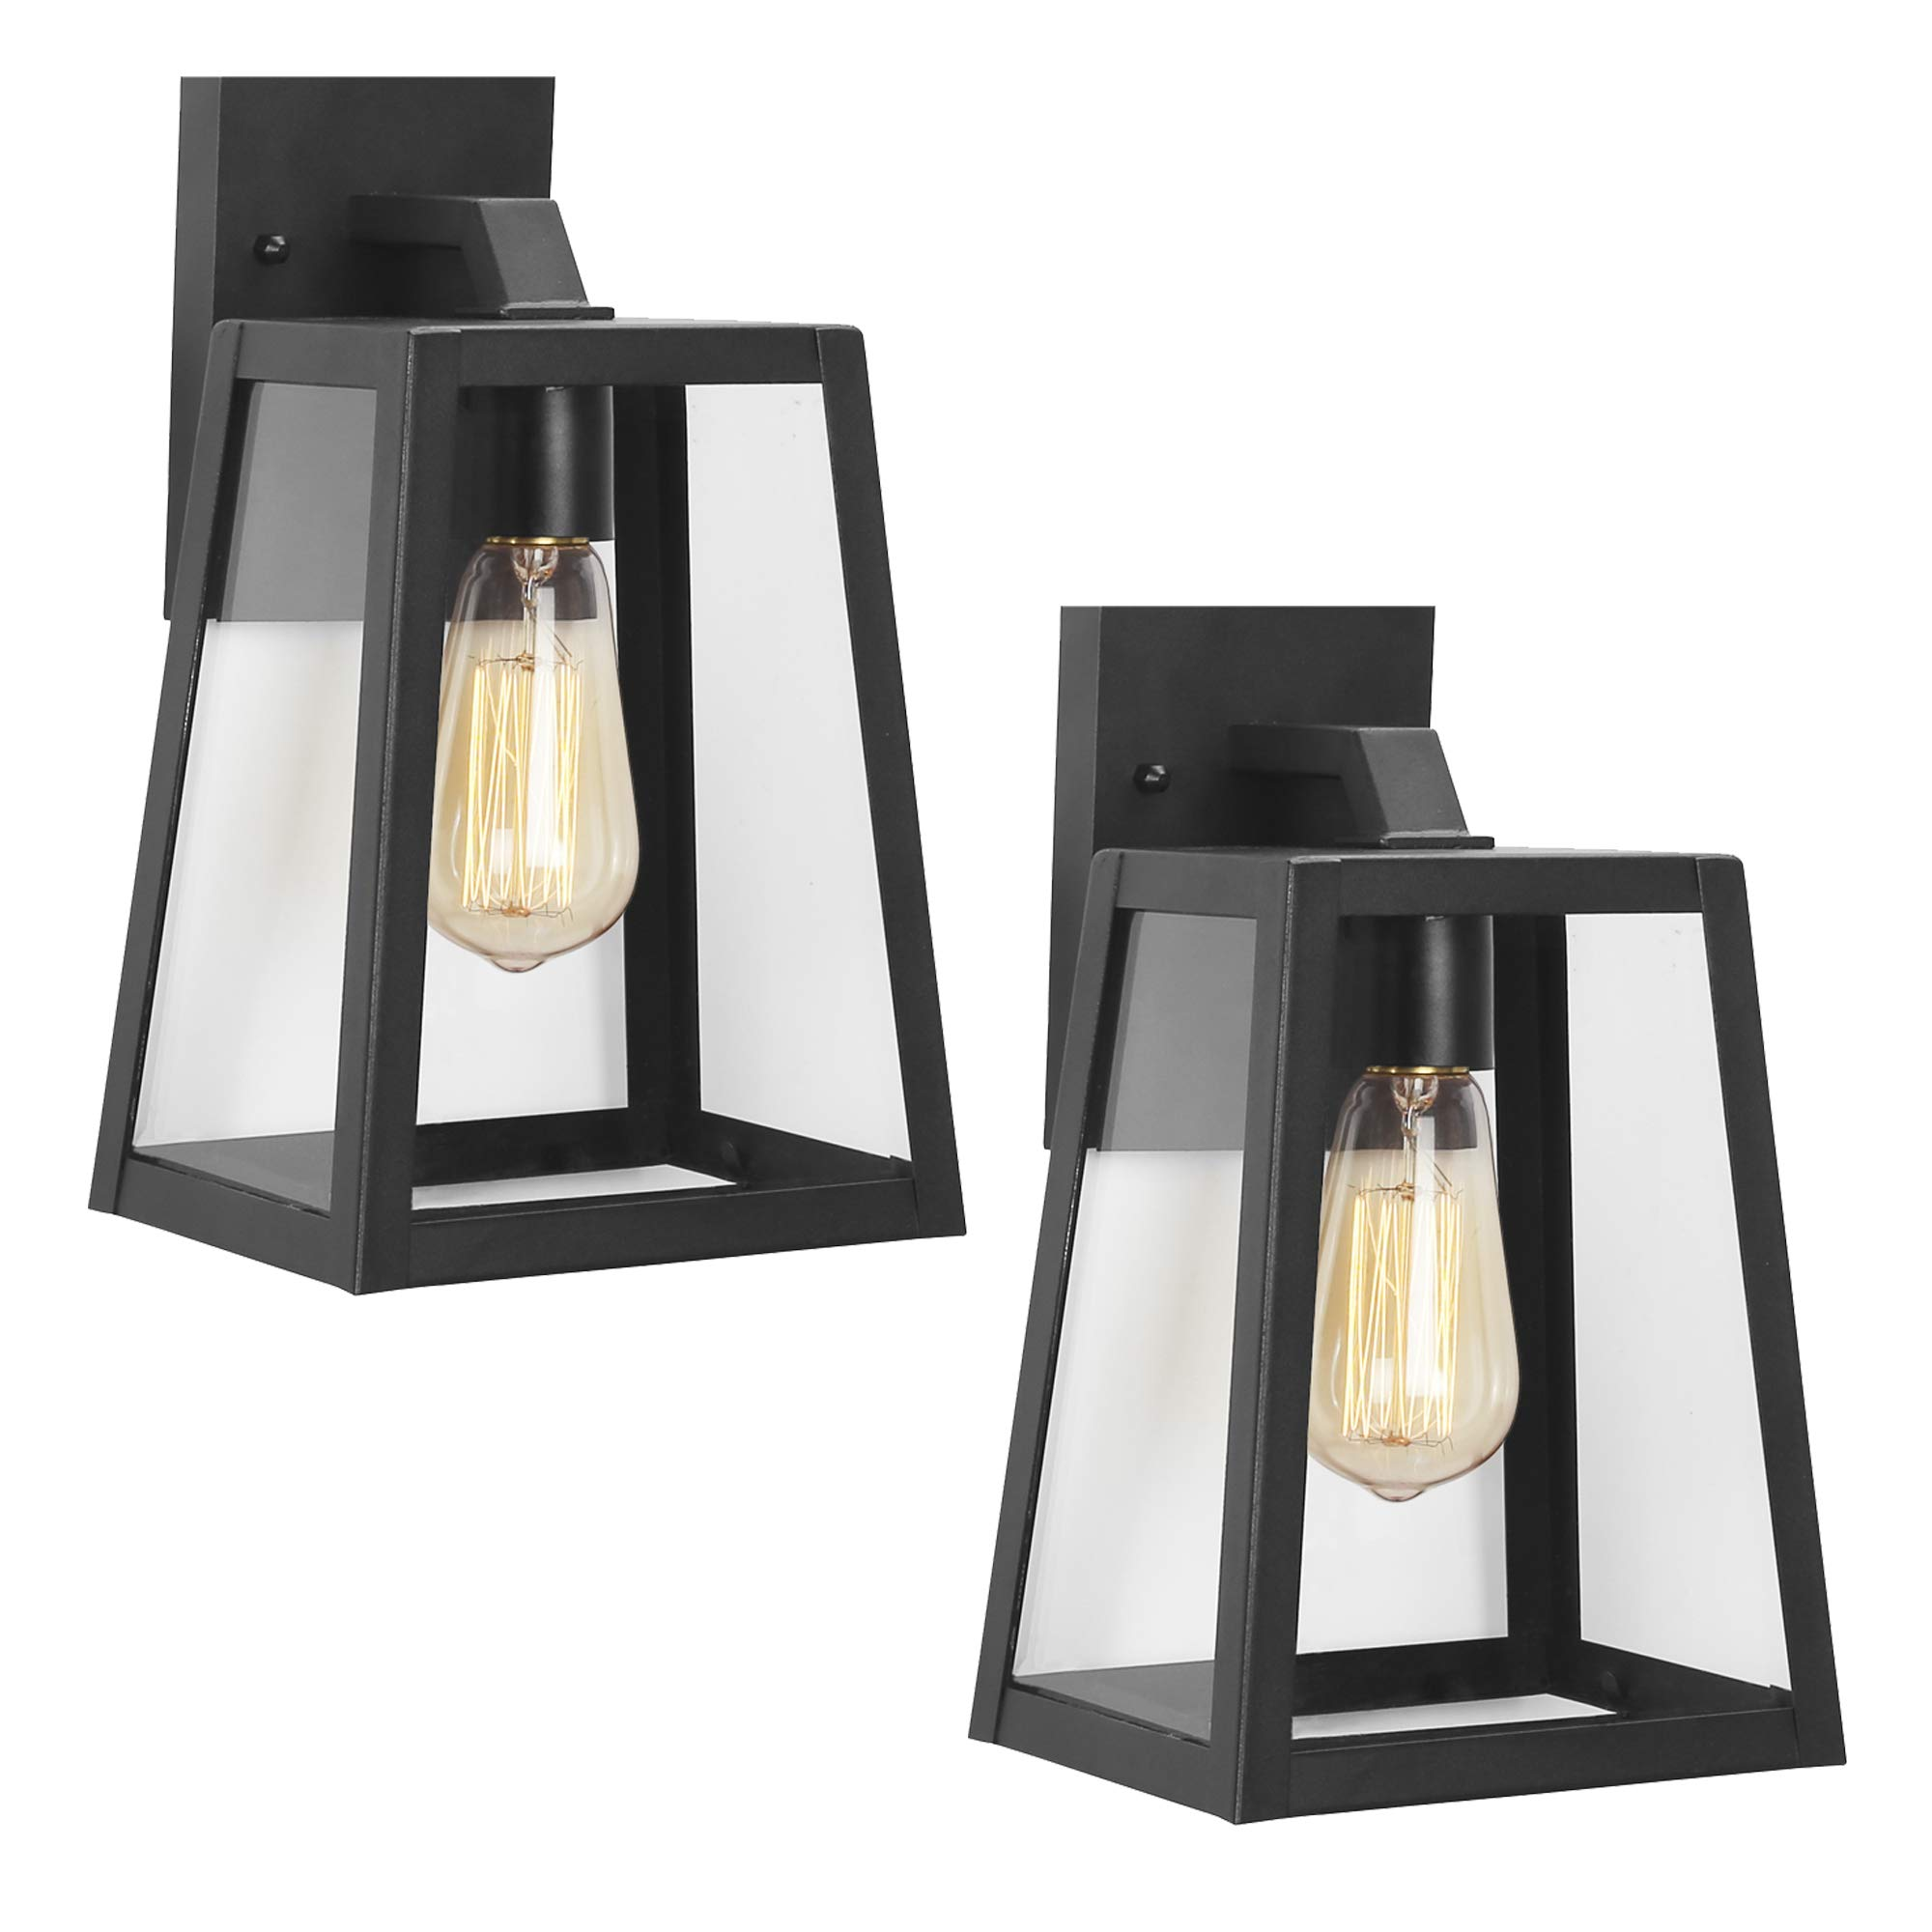 Emliviar Outdoor Wall Lighting Fixture 2 Pack, Wall Light Fixture in Black Finish with Clear Bevel Glass, 12'' Height, OS-1803AW2-2PK